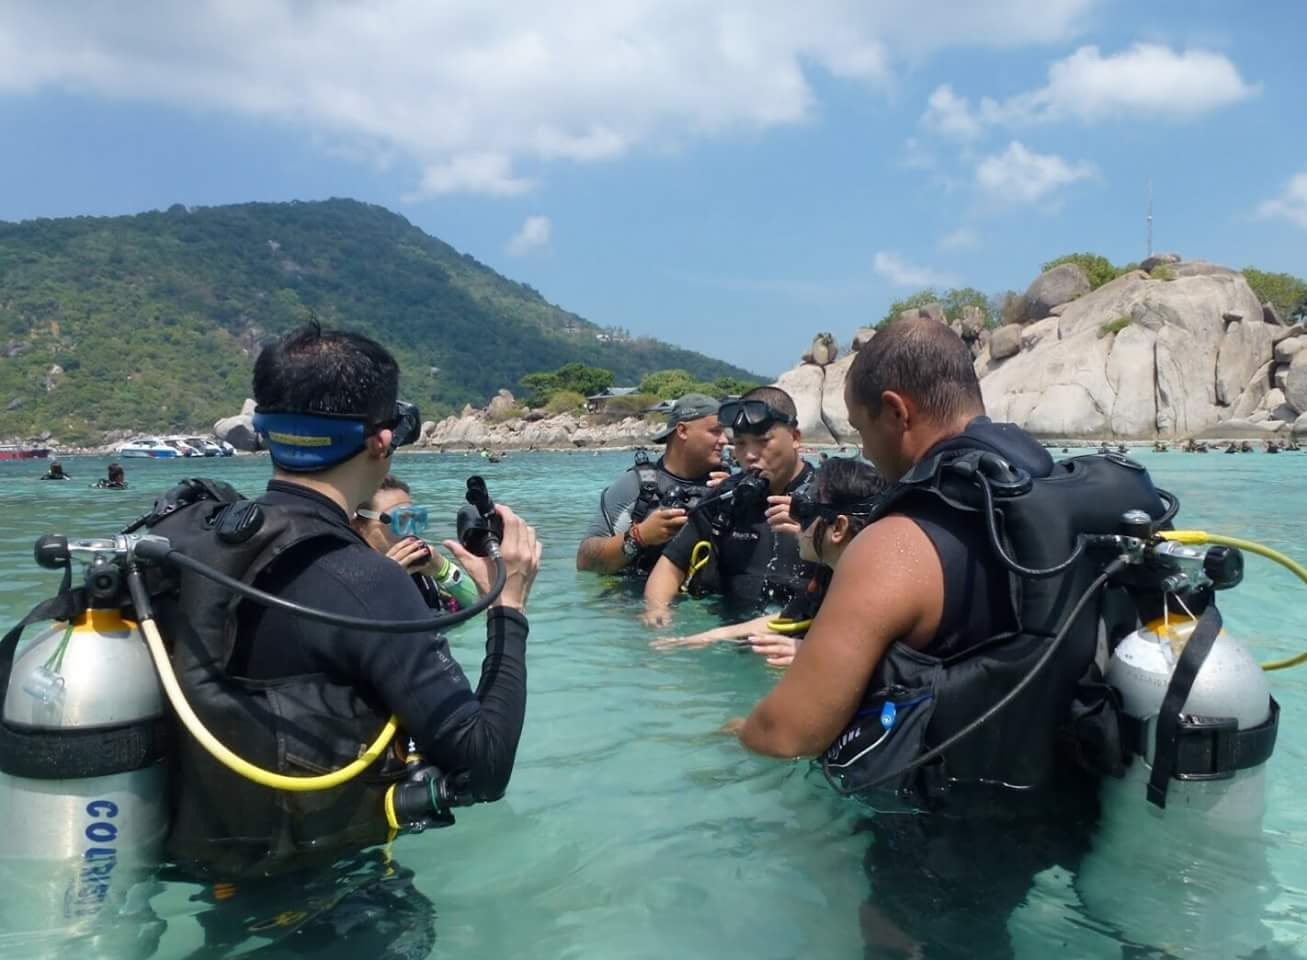 A great day had by all at Easy Divers day trip to Koh Nanguan | Samui Times